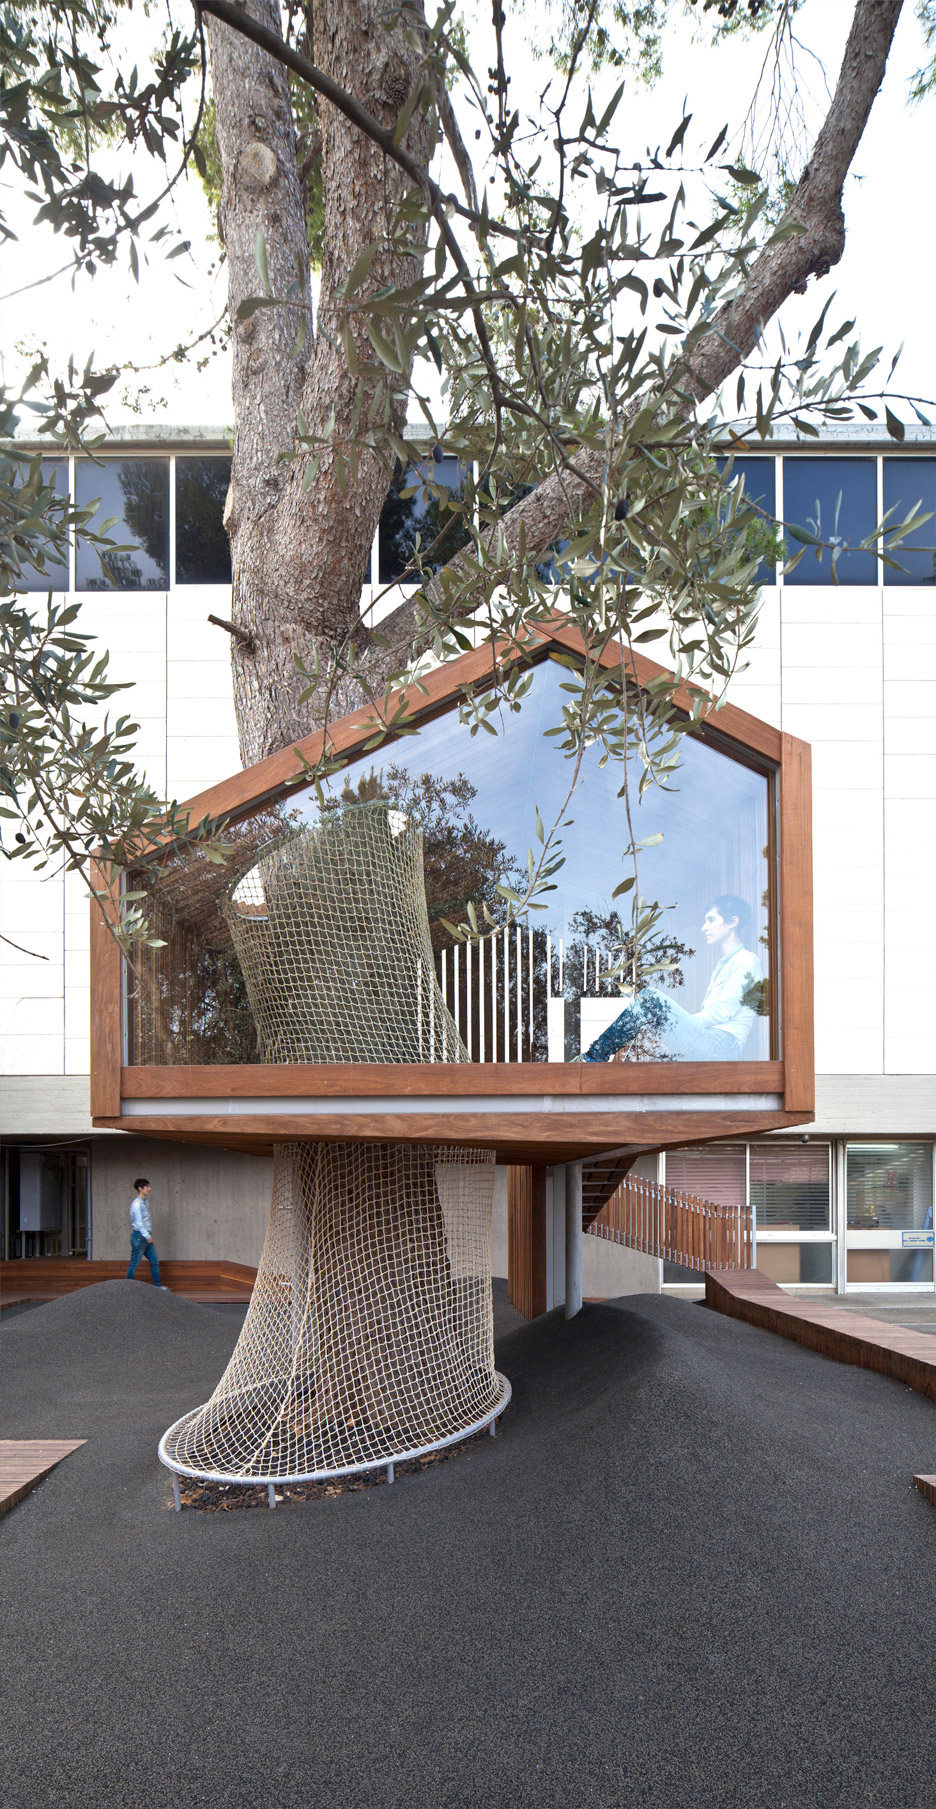 IMJ-tree-house-by-Ifat-Finkelman-and-Deborah-Warschawski_dezeen_936_5.jpg